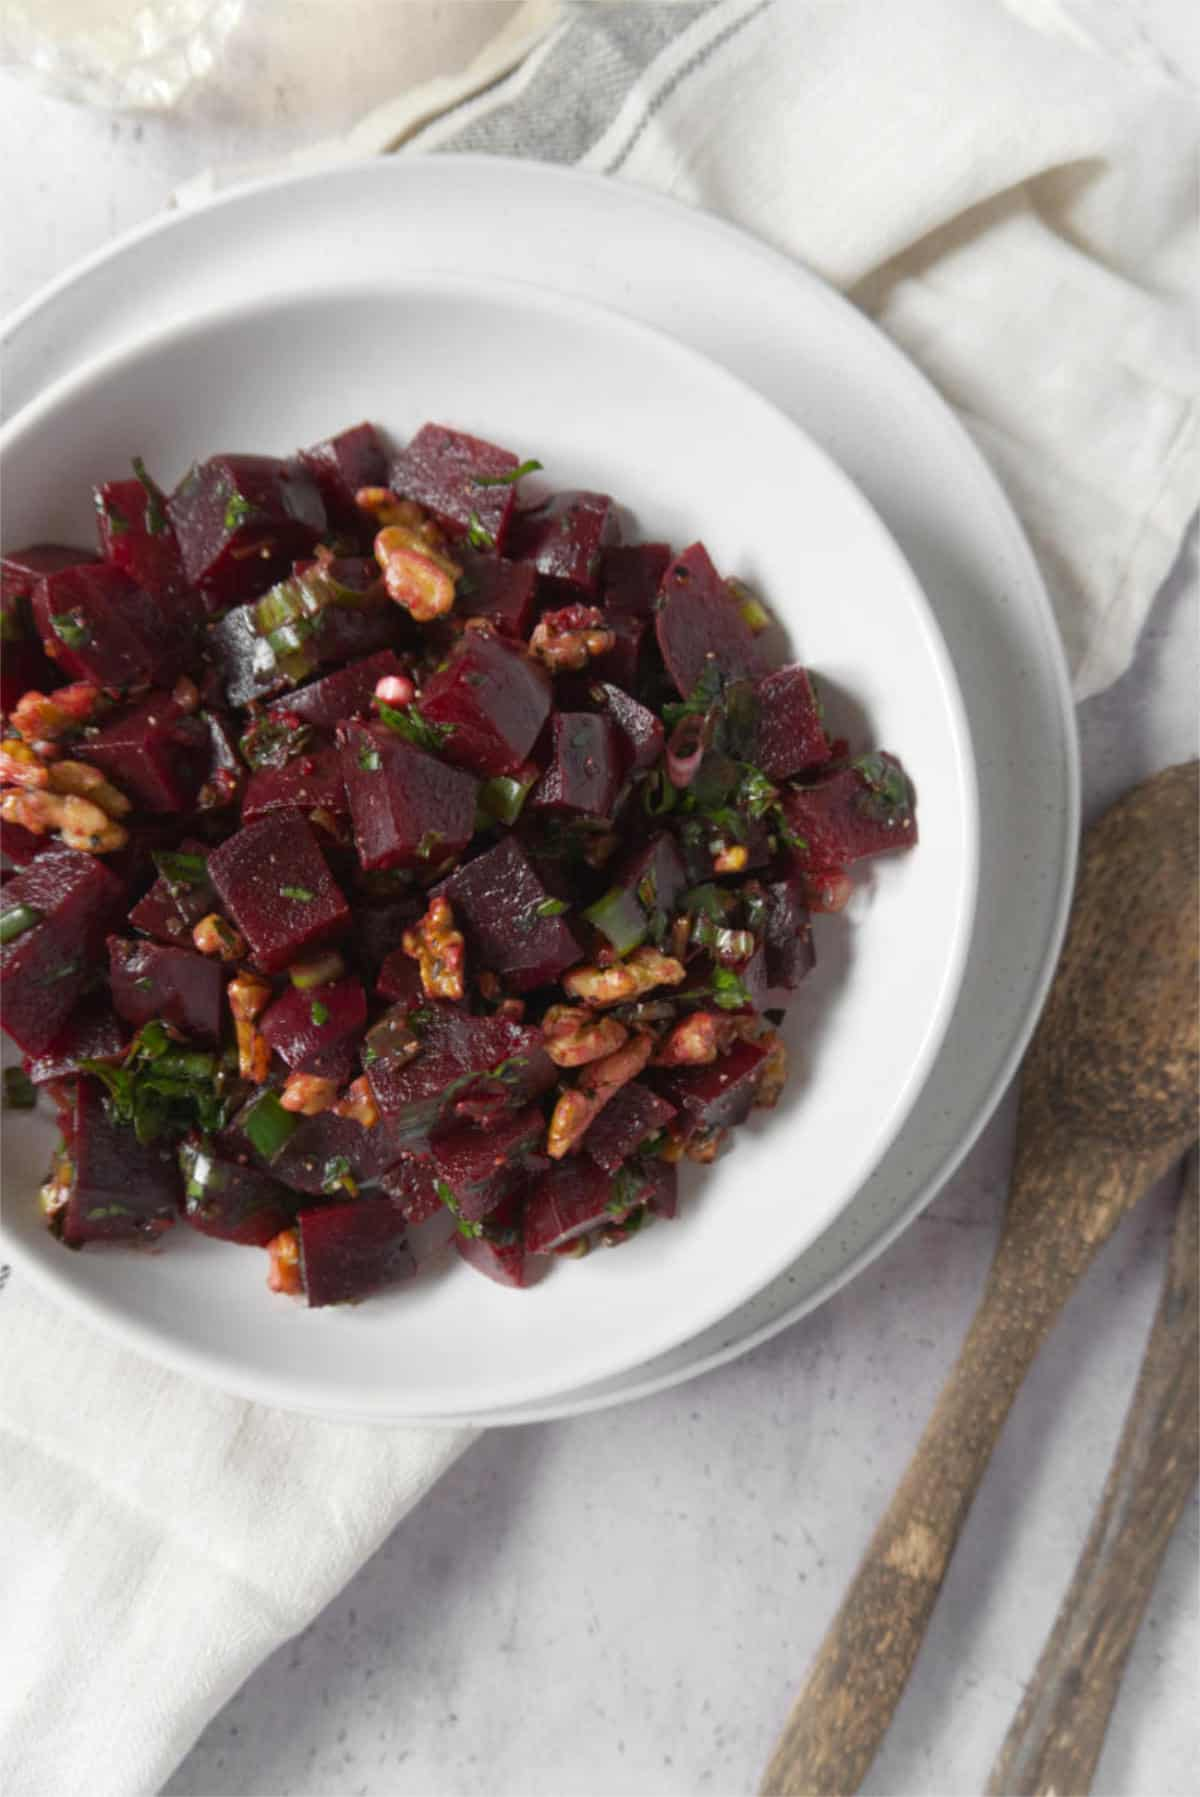 beetroot salad in a white plate